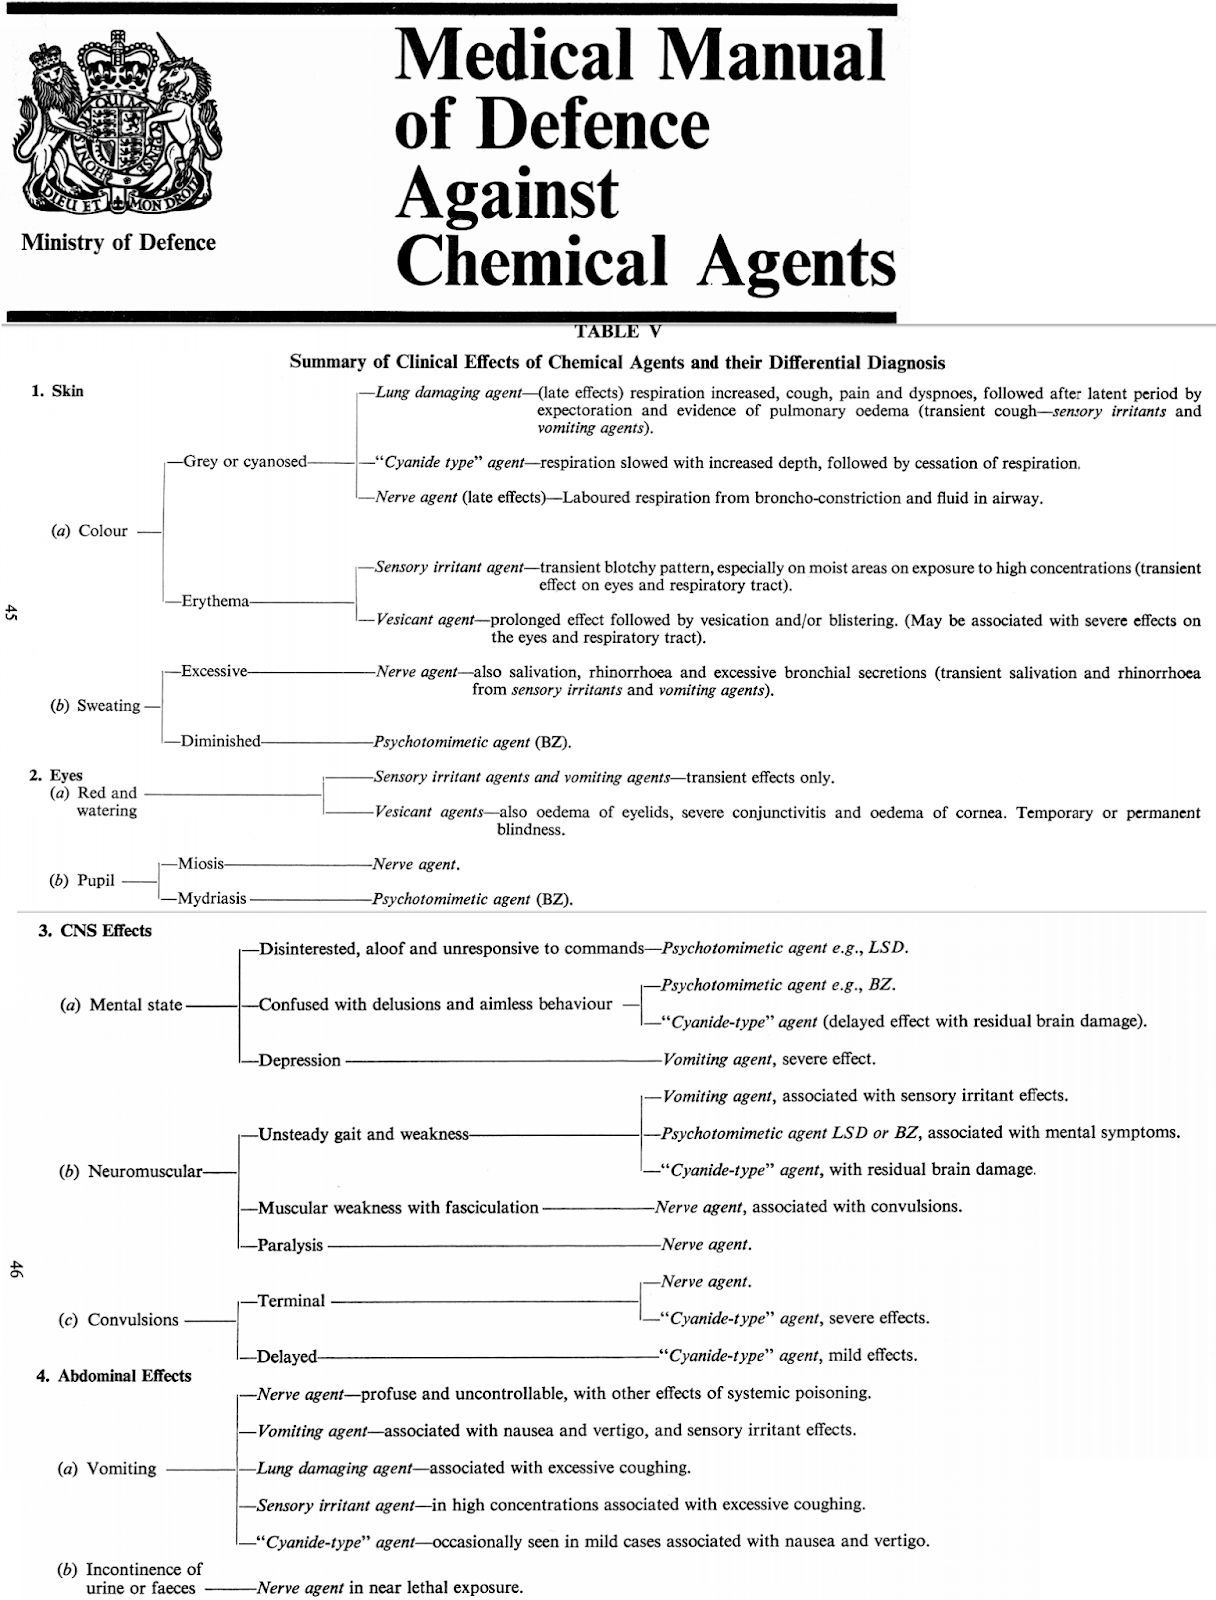 To IMMEDIATELY Identify The Type Of Nerve Gas Poisoning From A Proper Full Analysis All Symptoms Observed And Distinguish Other Gases